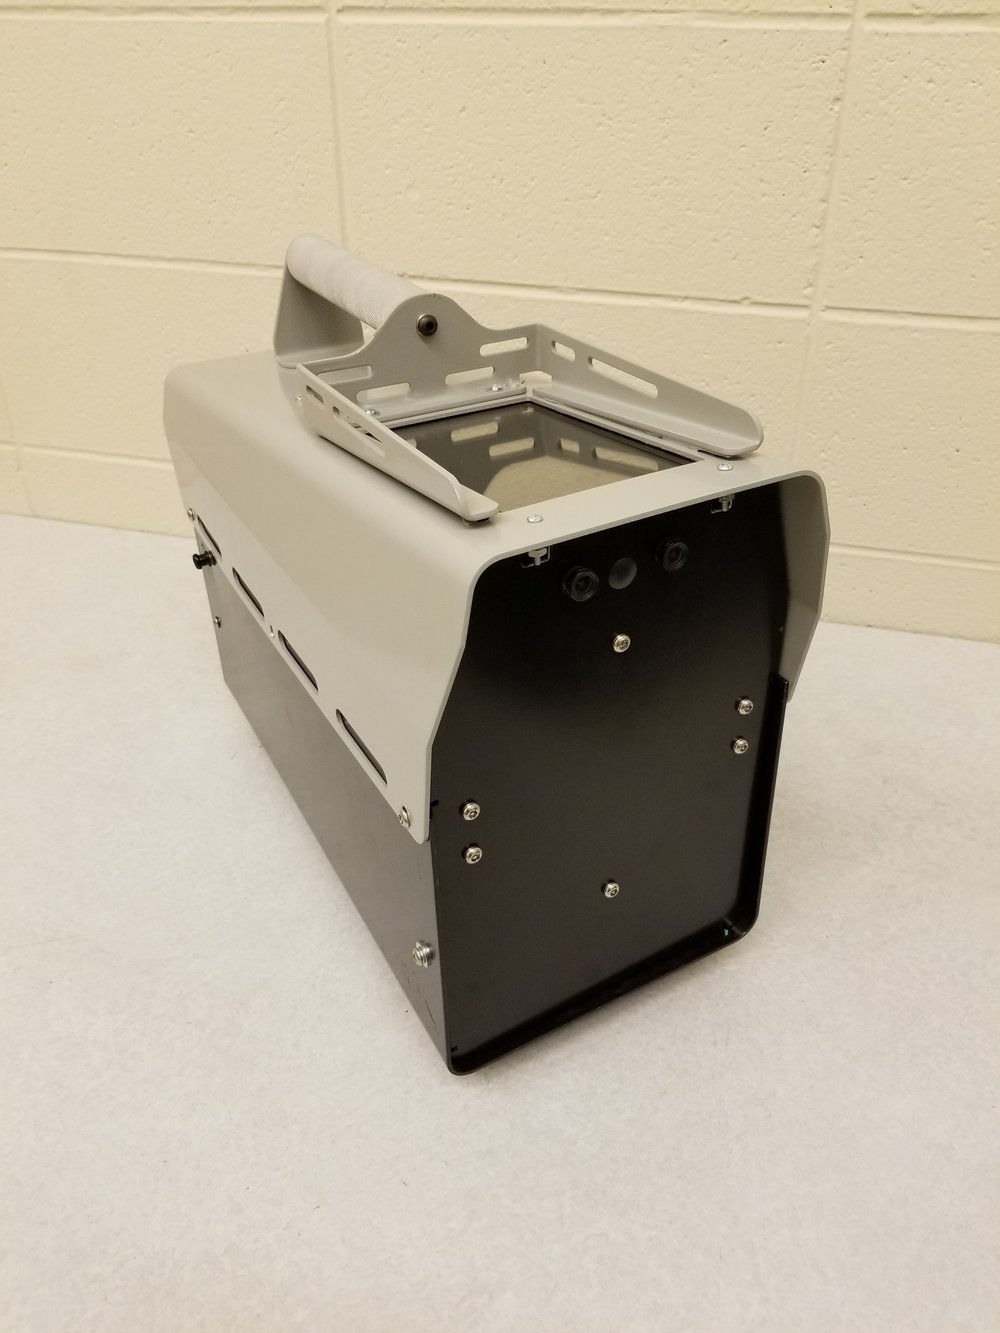 Portable Imaging Neutron Gamma Spectrometer PINGS  - (NeuKopis)   Phase II - Engineering Development instrument built following technical foundation ANTERO was designed to.  <click  HERE  to view preliminary Operator Instructions>